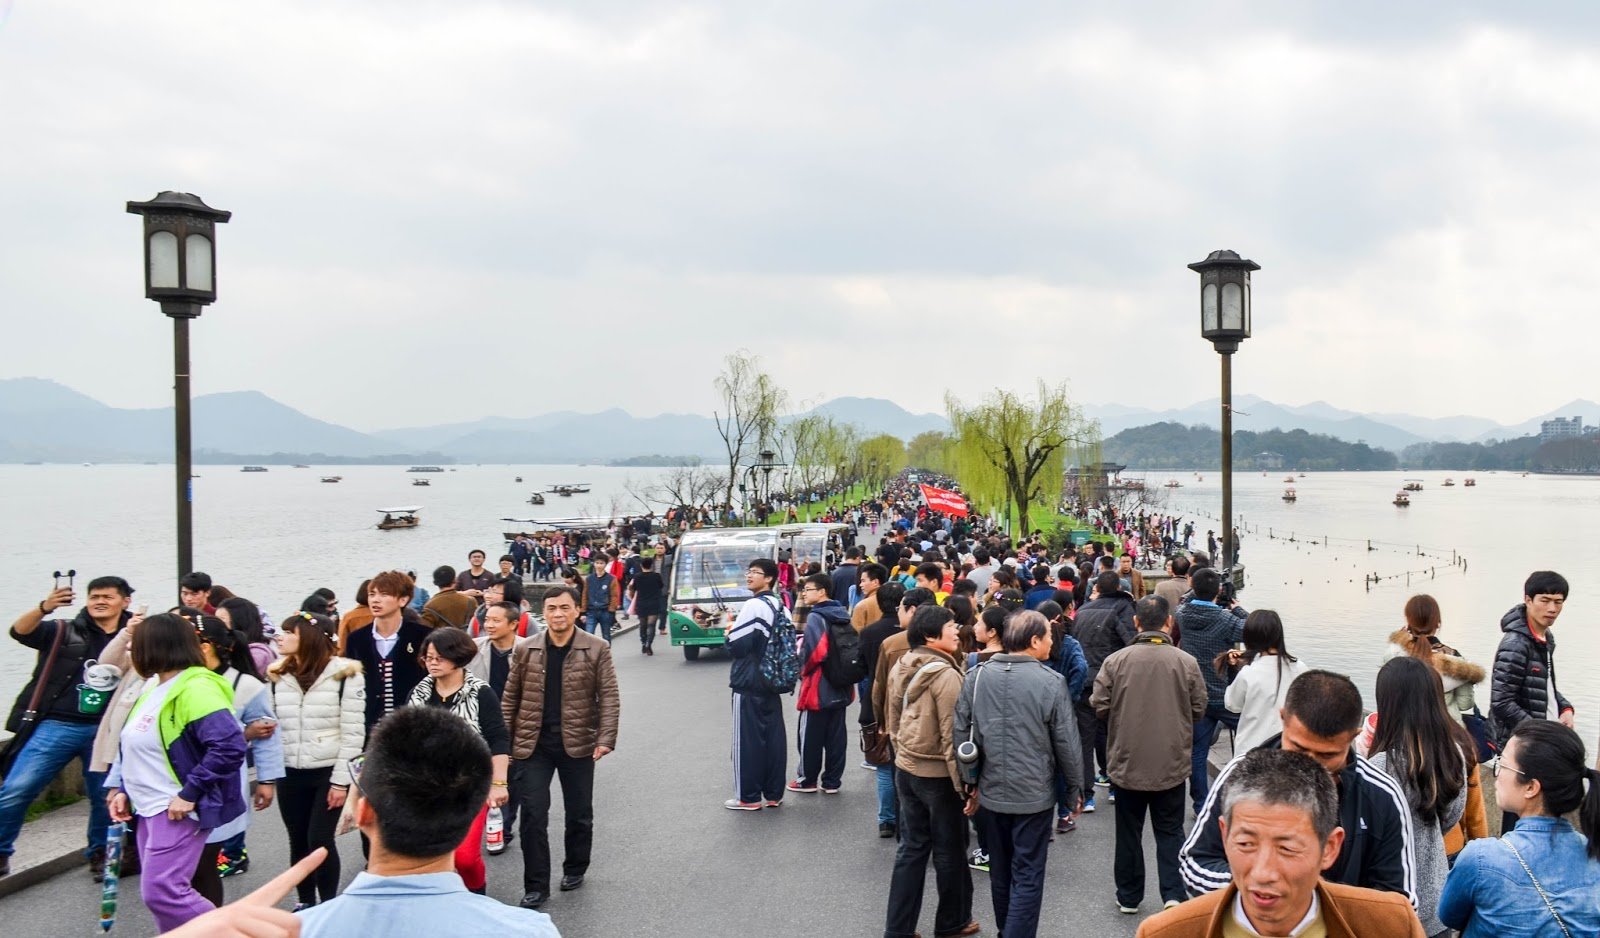 Crowd of people in Hangzhou China